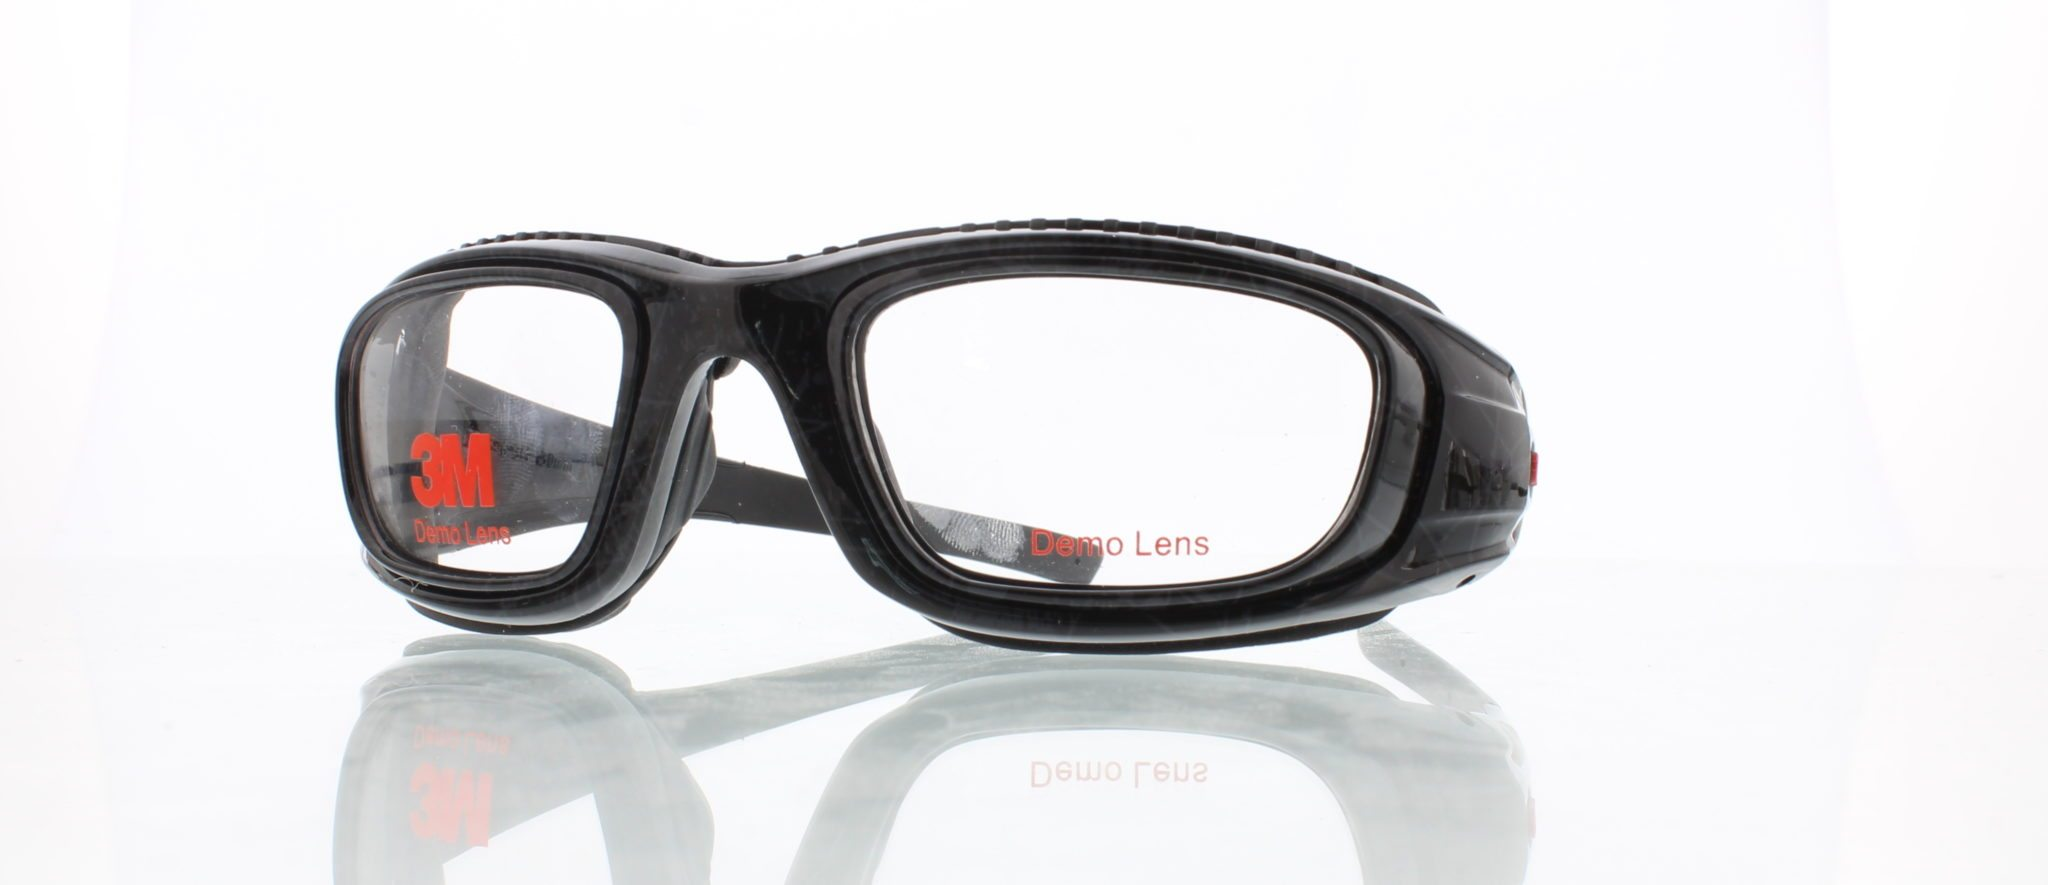 3m Zt45 3m Ansi Rated Industrial Safety Eyeglasses